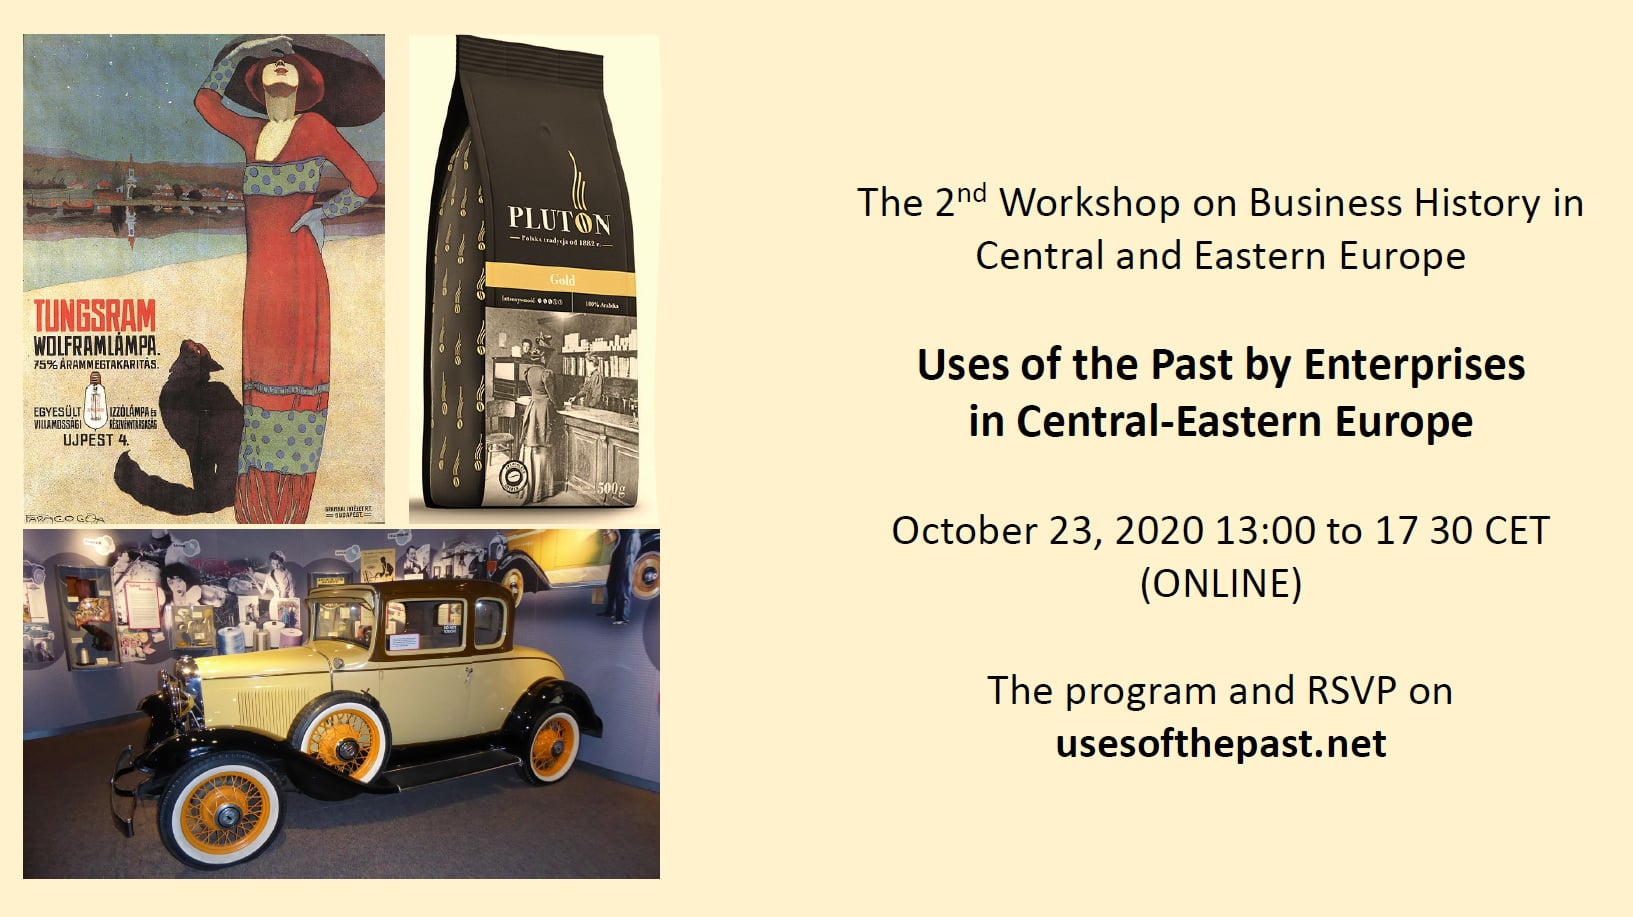 Uses of the Past in Central and Eastern Europe